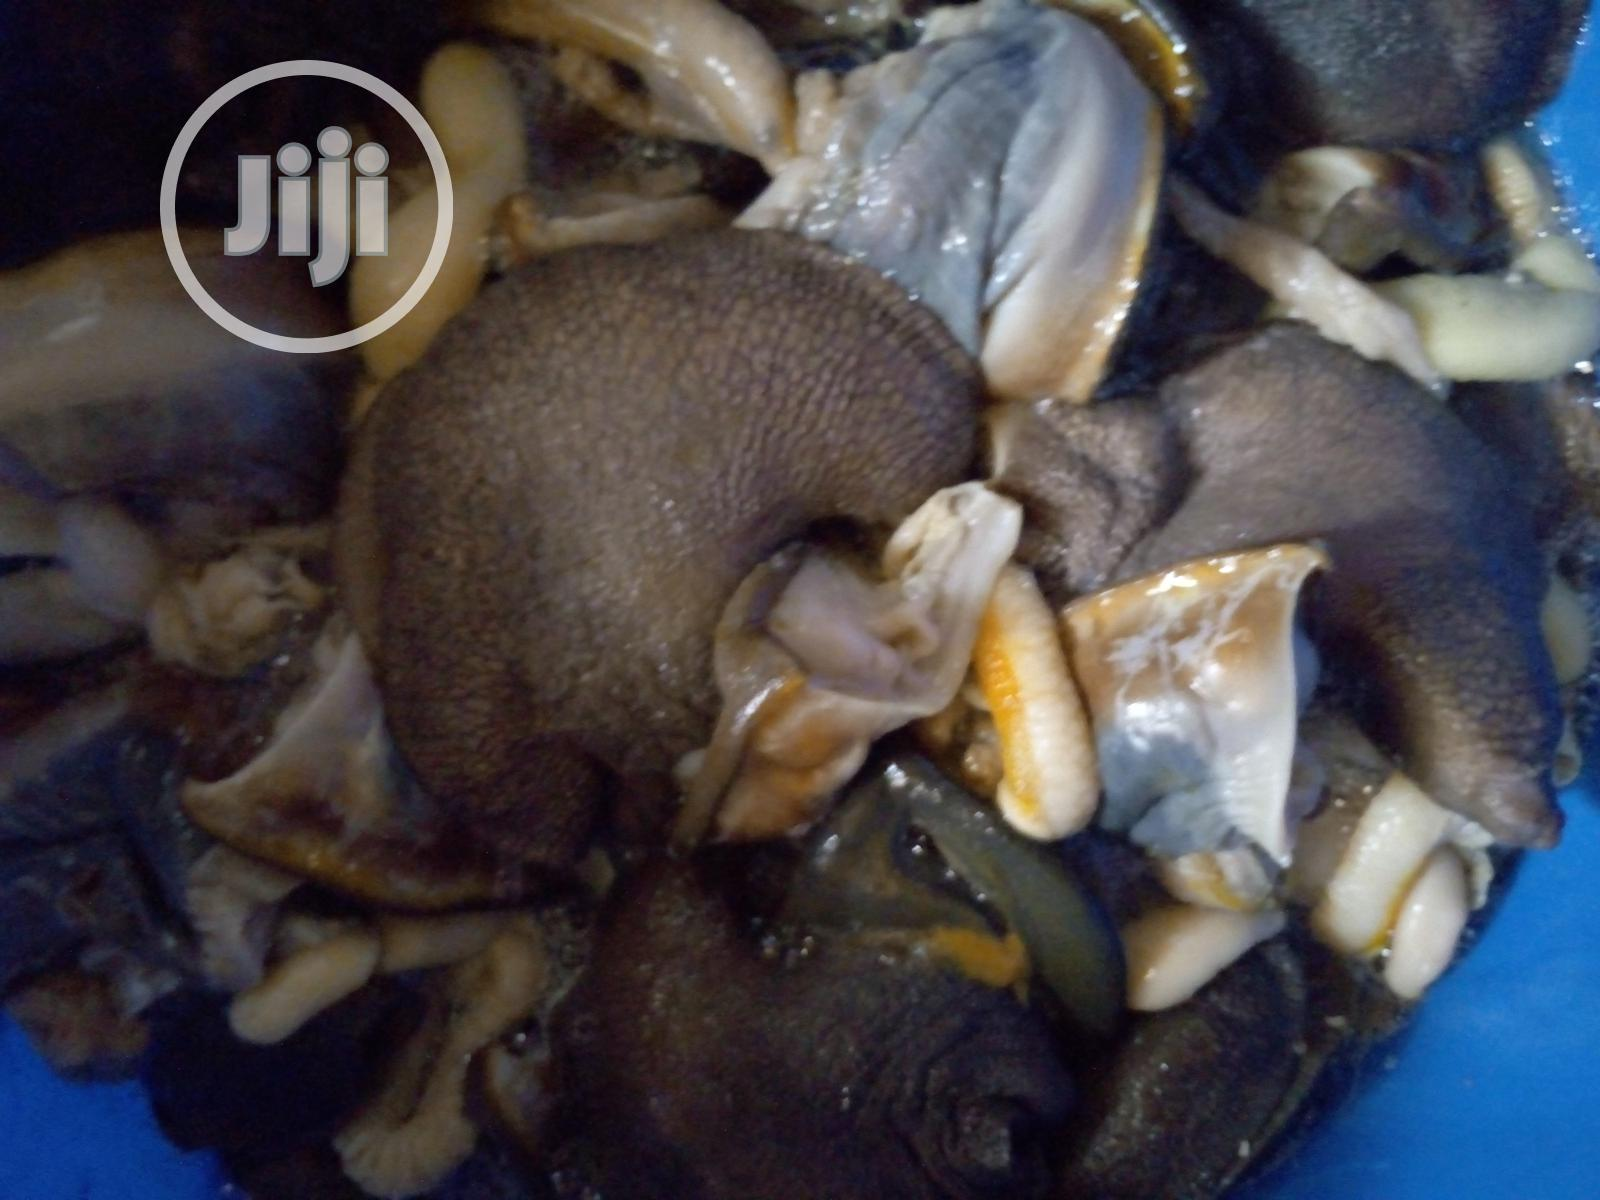 Archive: Snail Meat For Sale